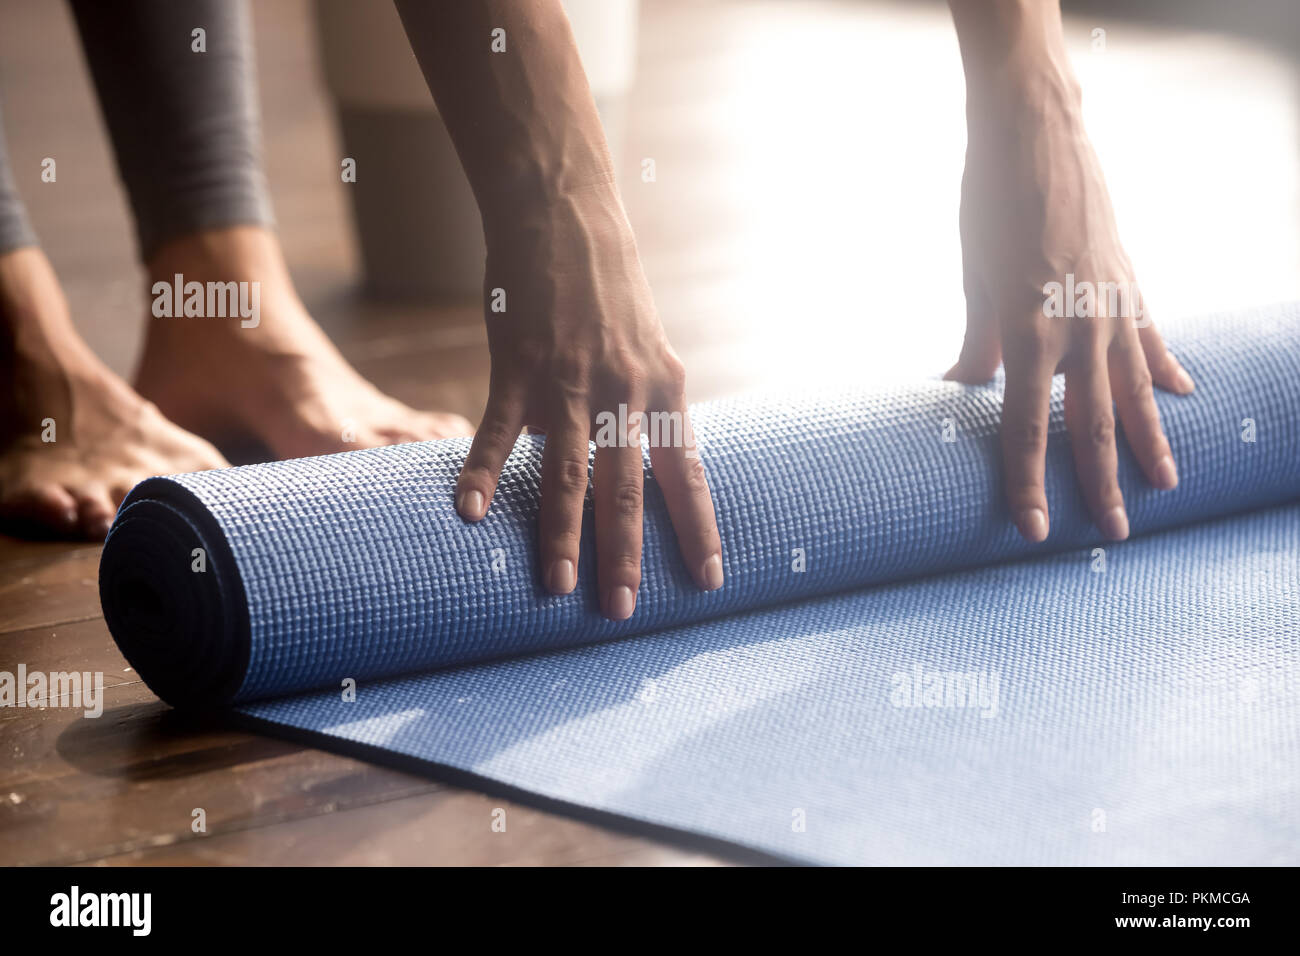 Blue fitness exercise mat, equipment for sport training session - Stock Image